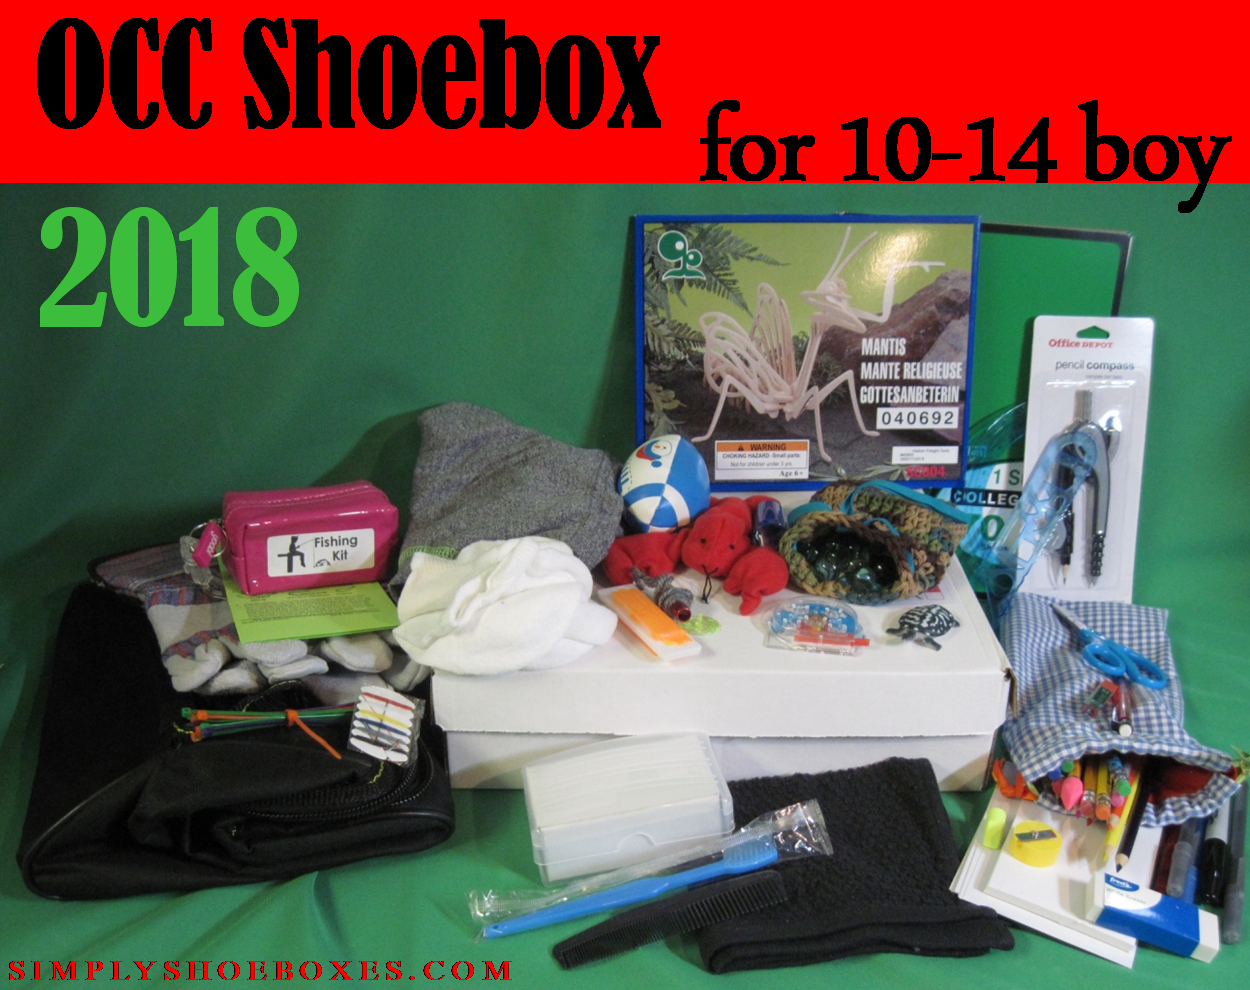 Operation Christmas Child Boxes 2019.Simply Shoeboxes Operation Christmas Child Shoebox For 10